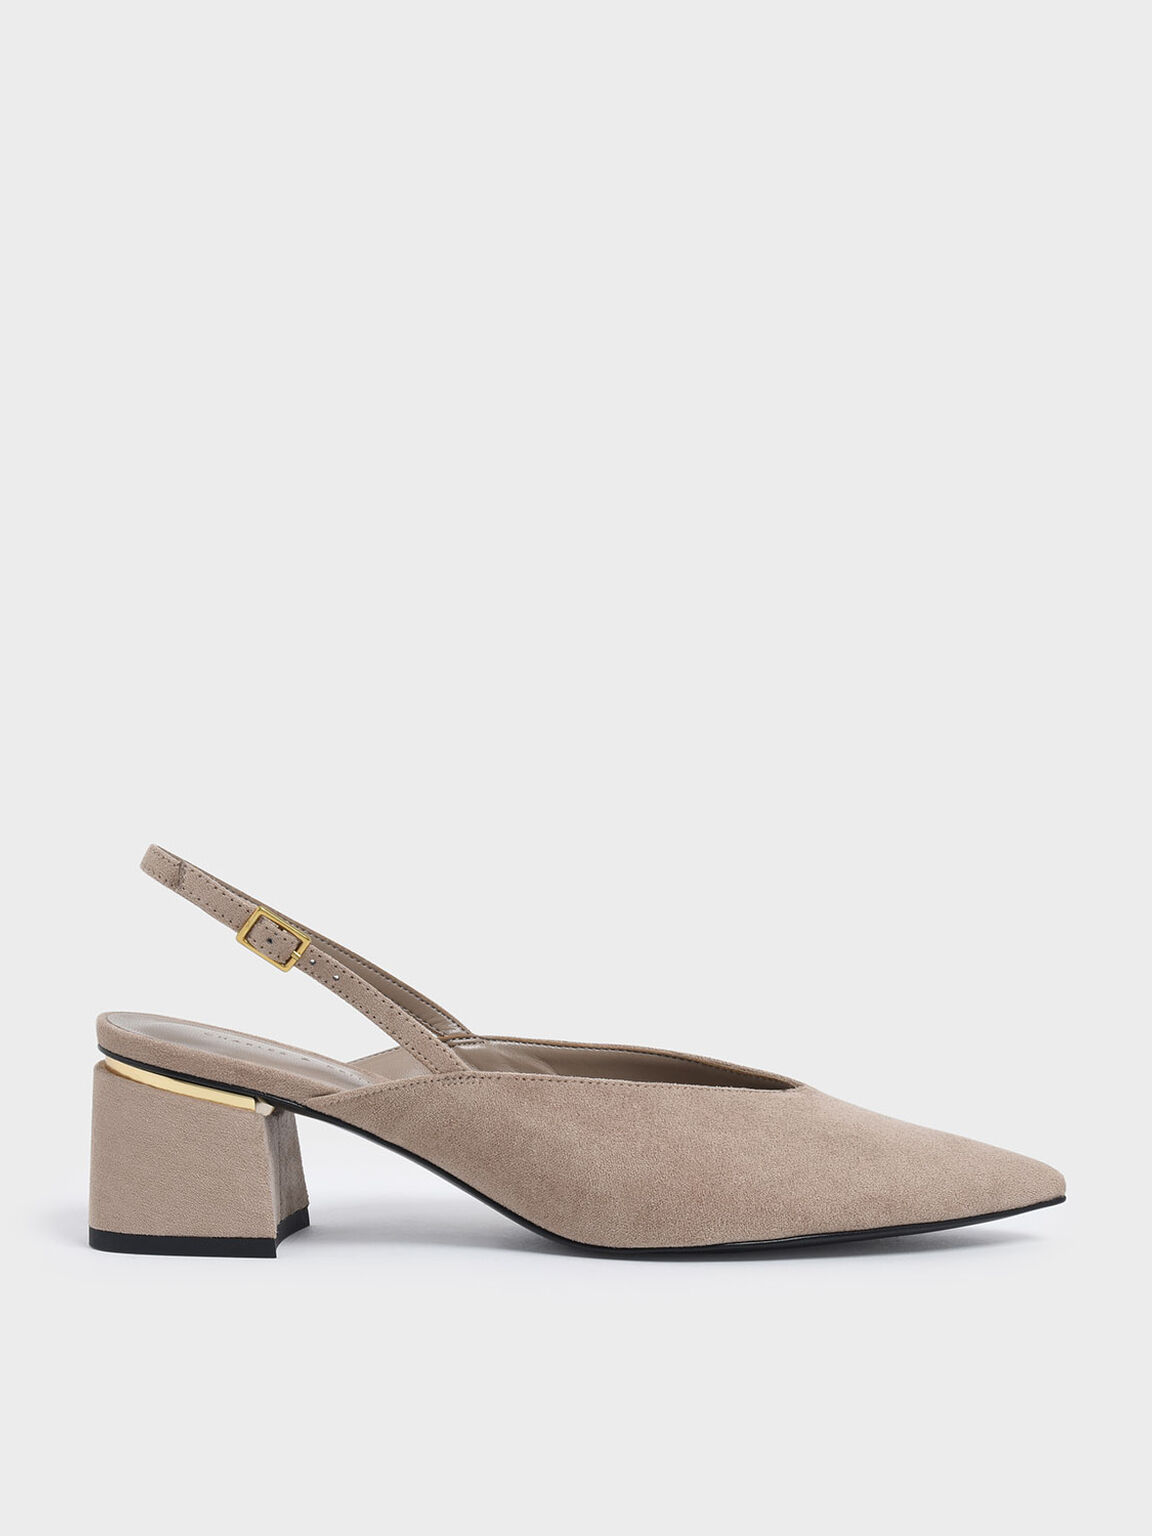 V-Cut Block Heel Textured Slingback Pumps, Nude, hi-res